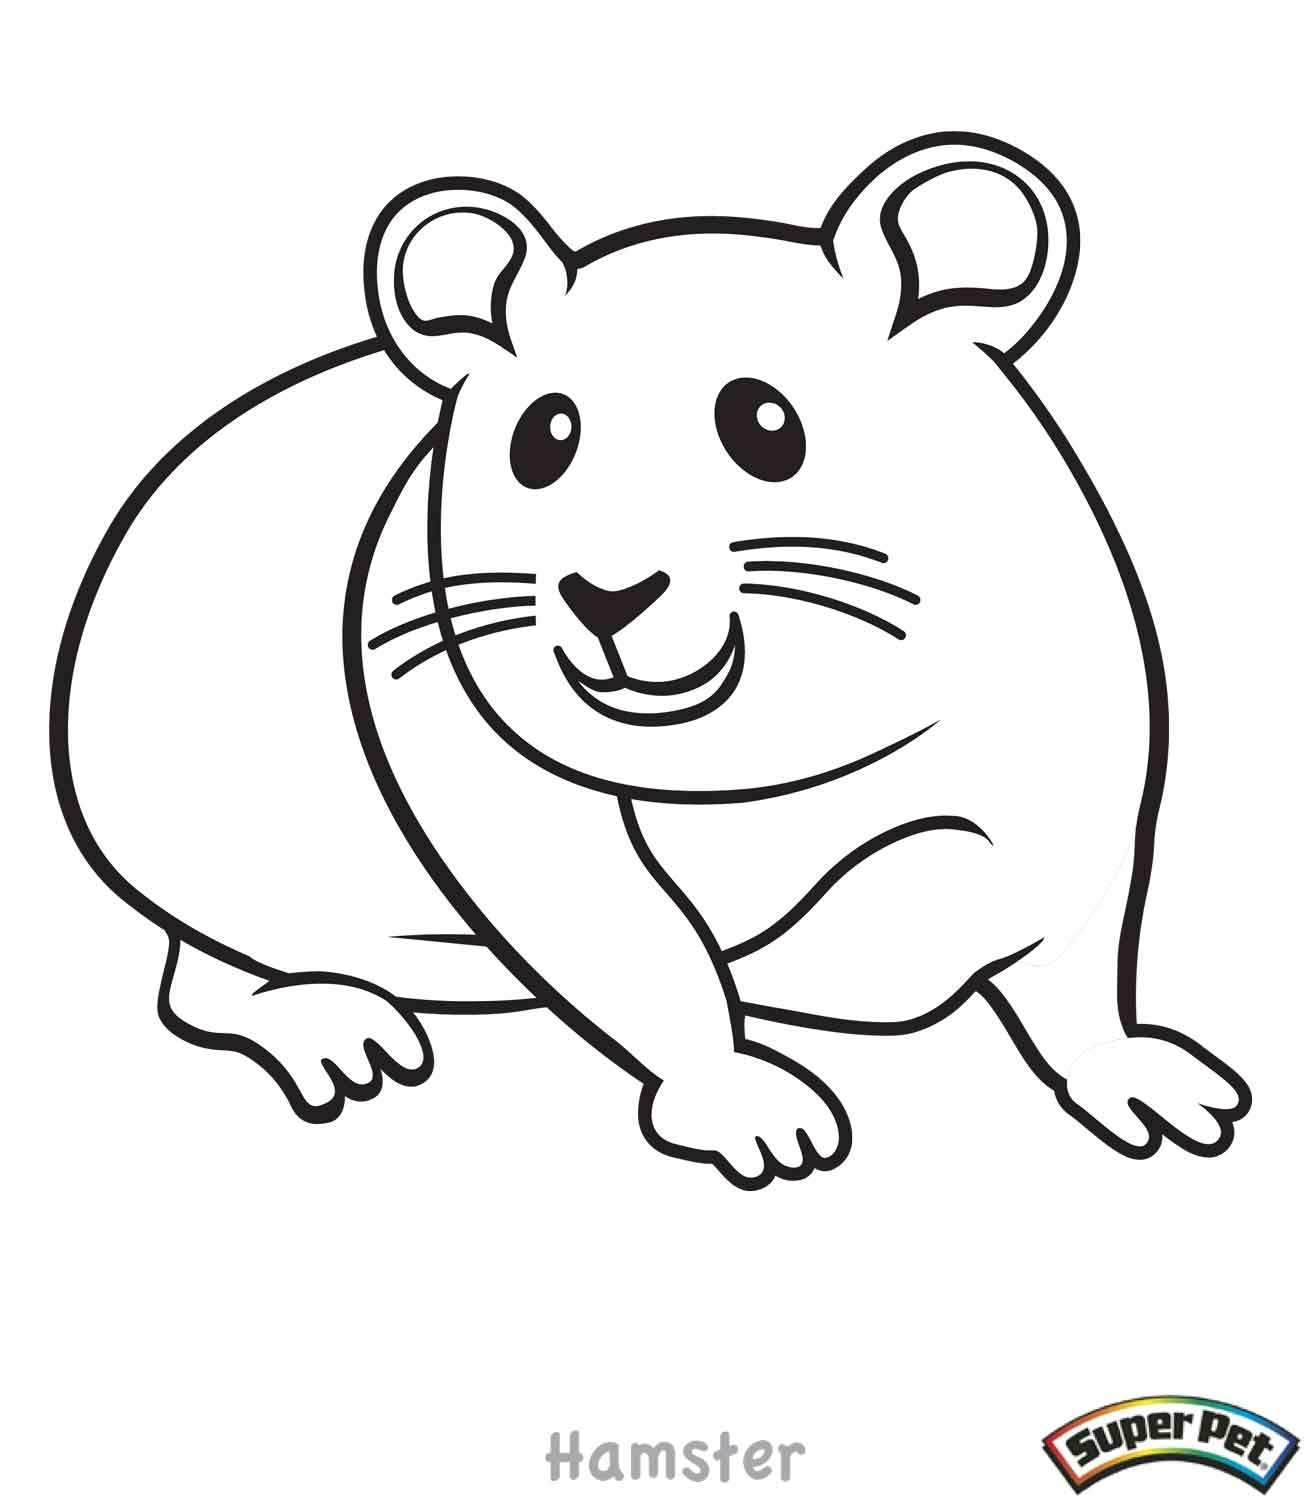 Hamster Coloring Pages - Pin Hamster Colouring Pages On Pinterest